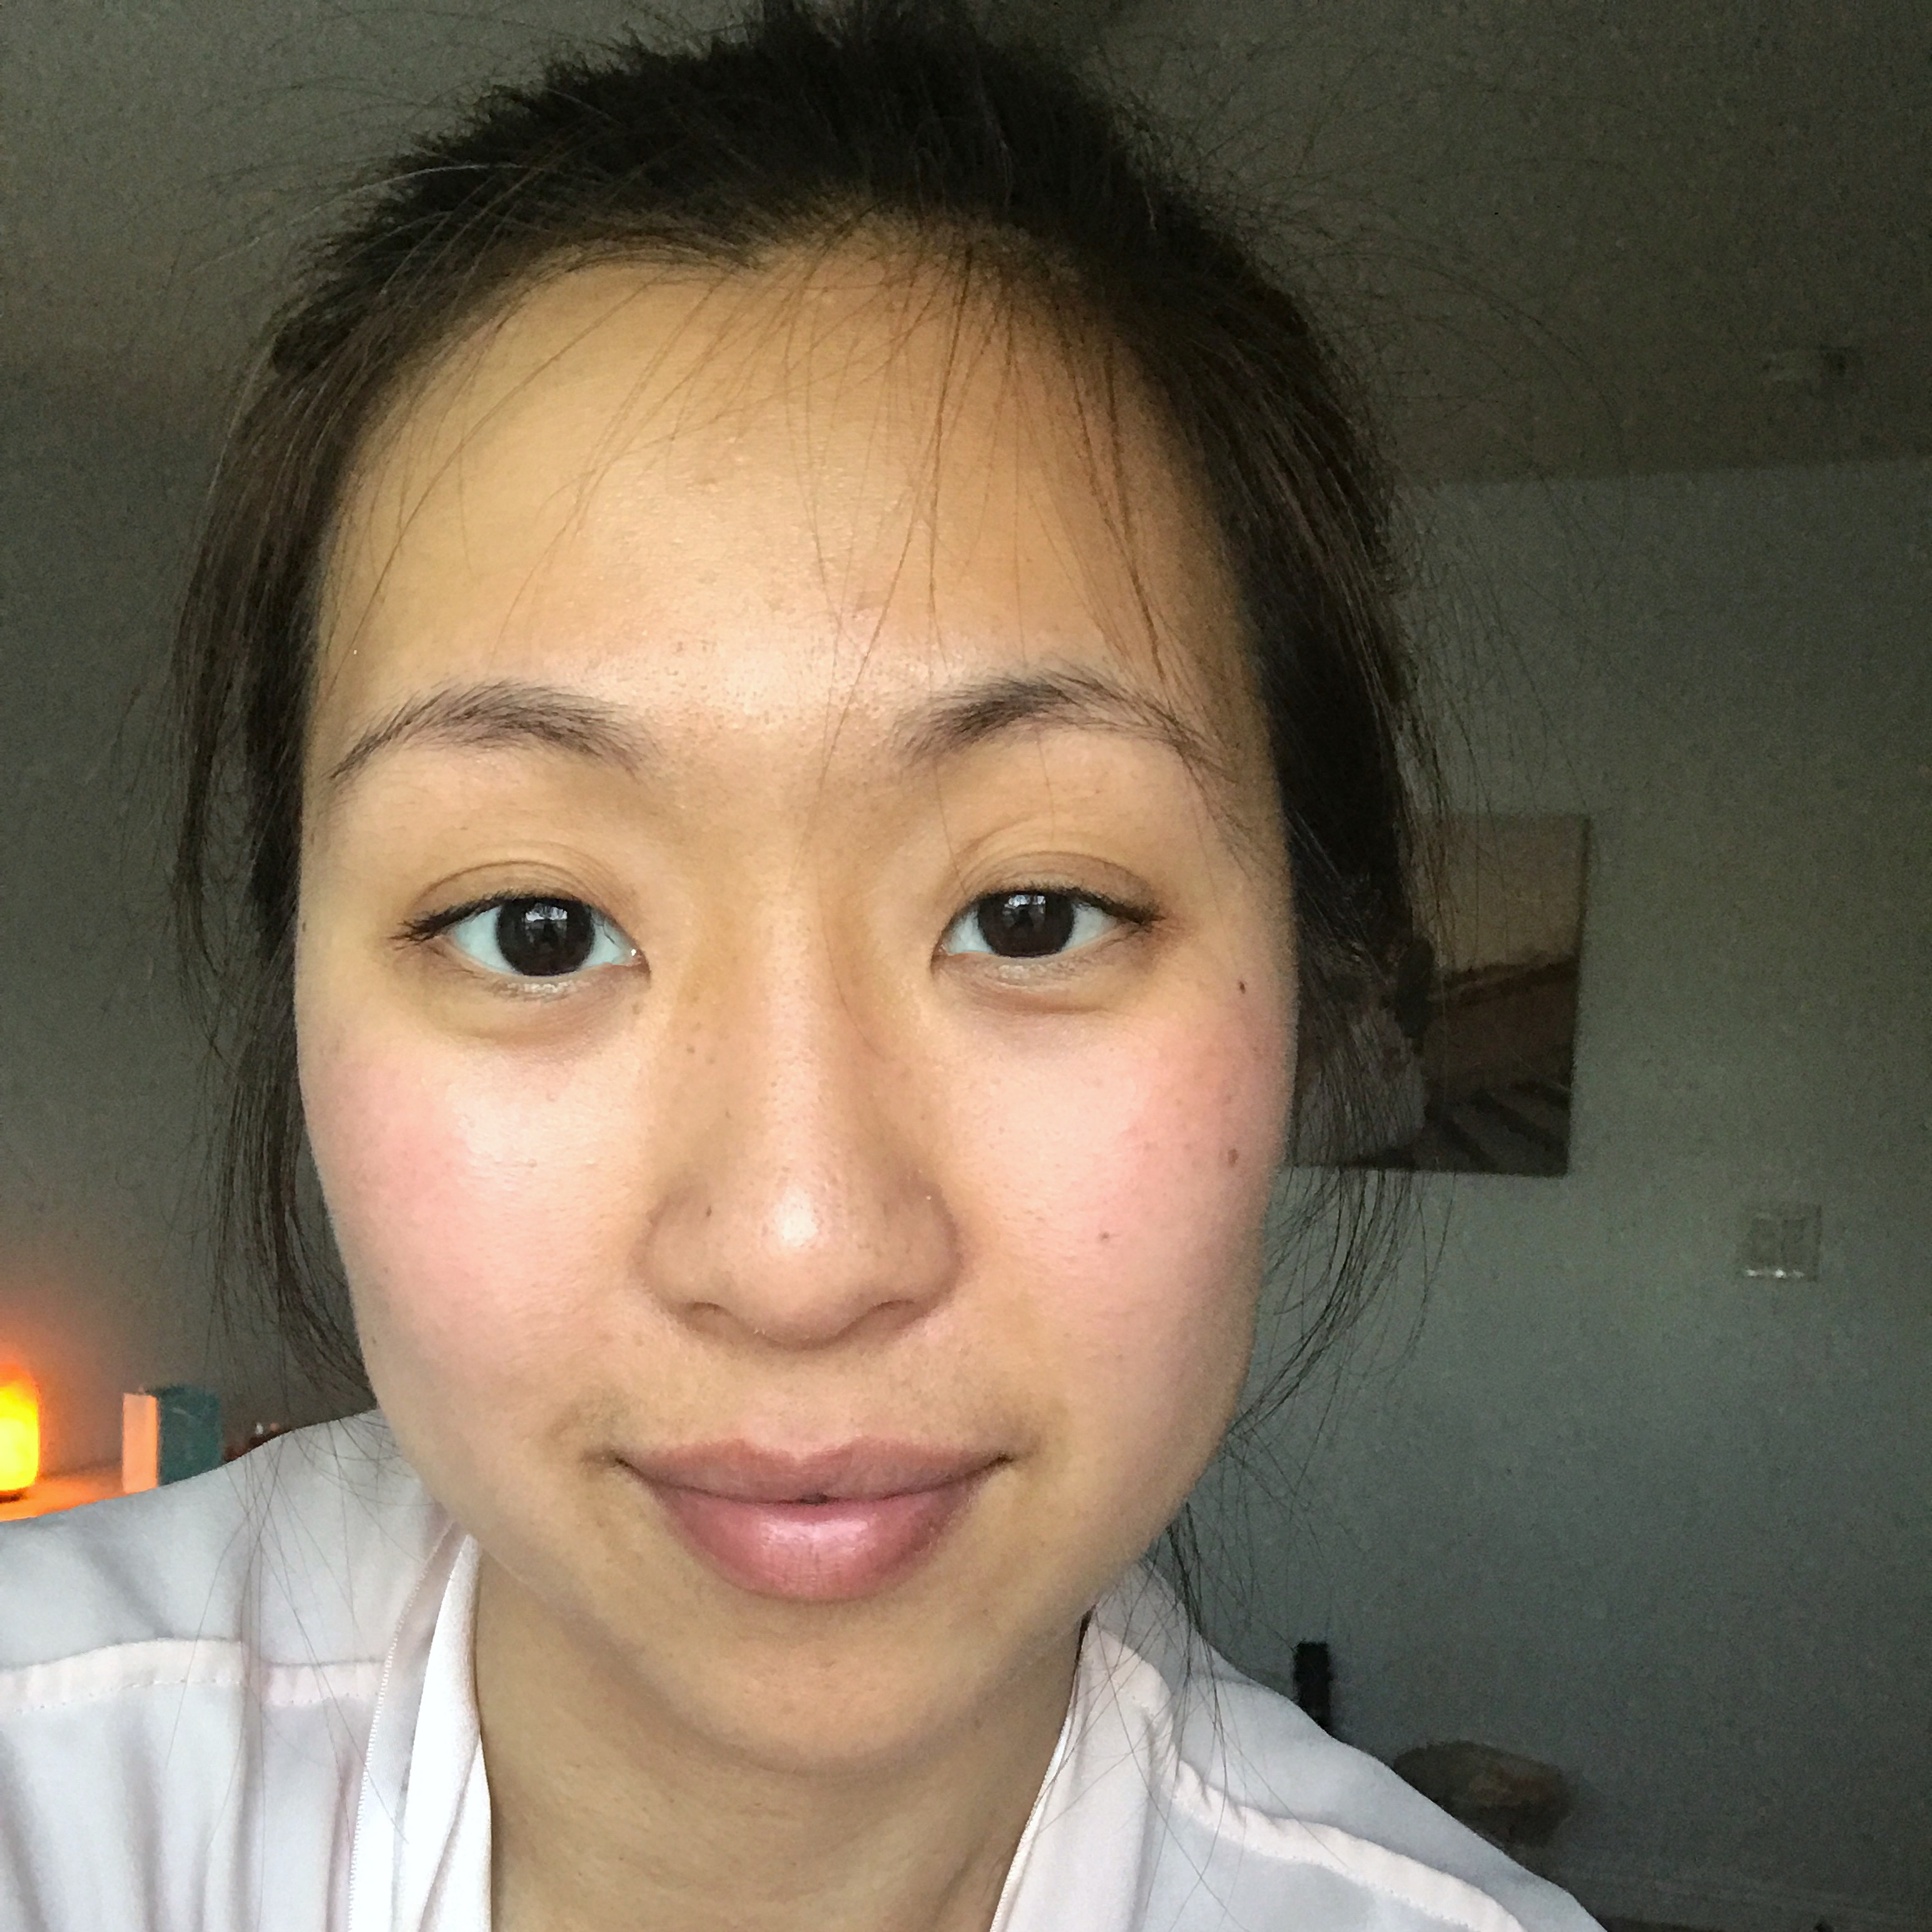 1 hour later after applying my serum and lotion. I caught the last bit of light before sunset in this photo.